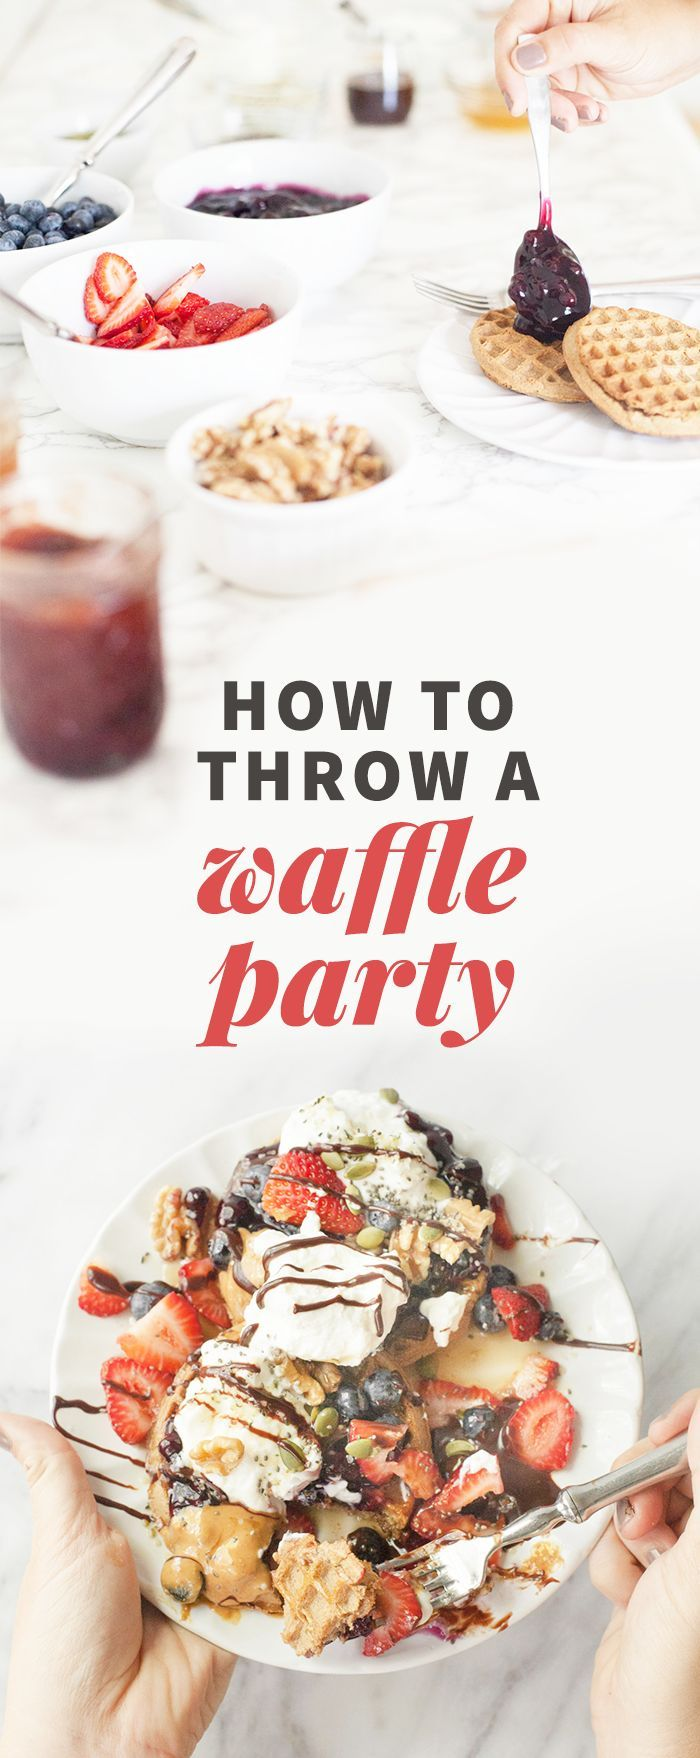 AD: How to Throw a Waffle Party